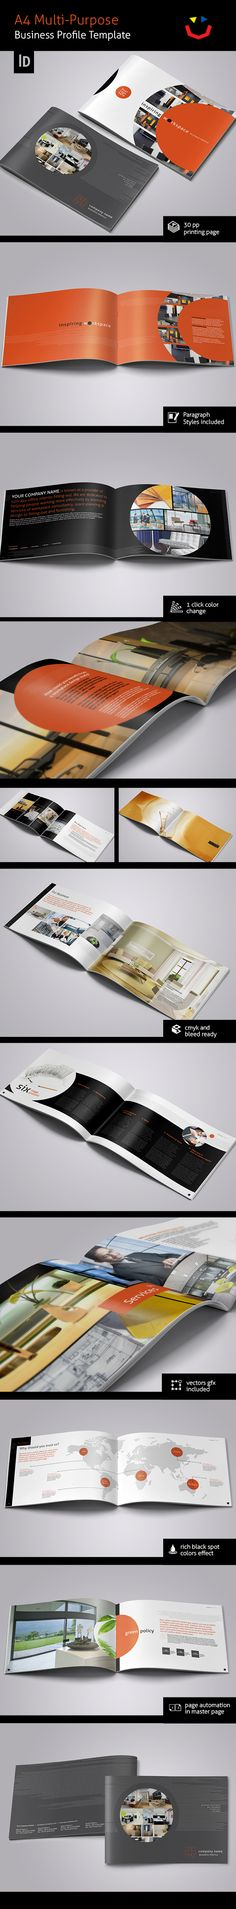 This brochure designed perfectly for your marketing communication. The brochure…